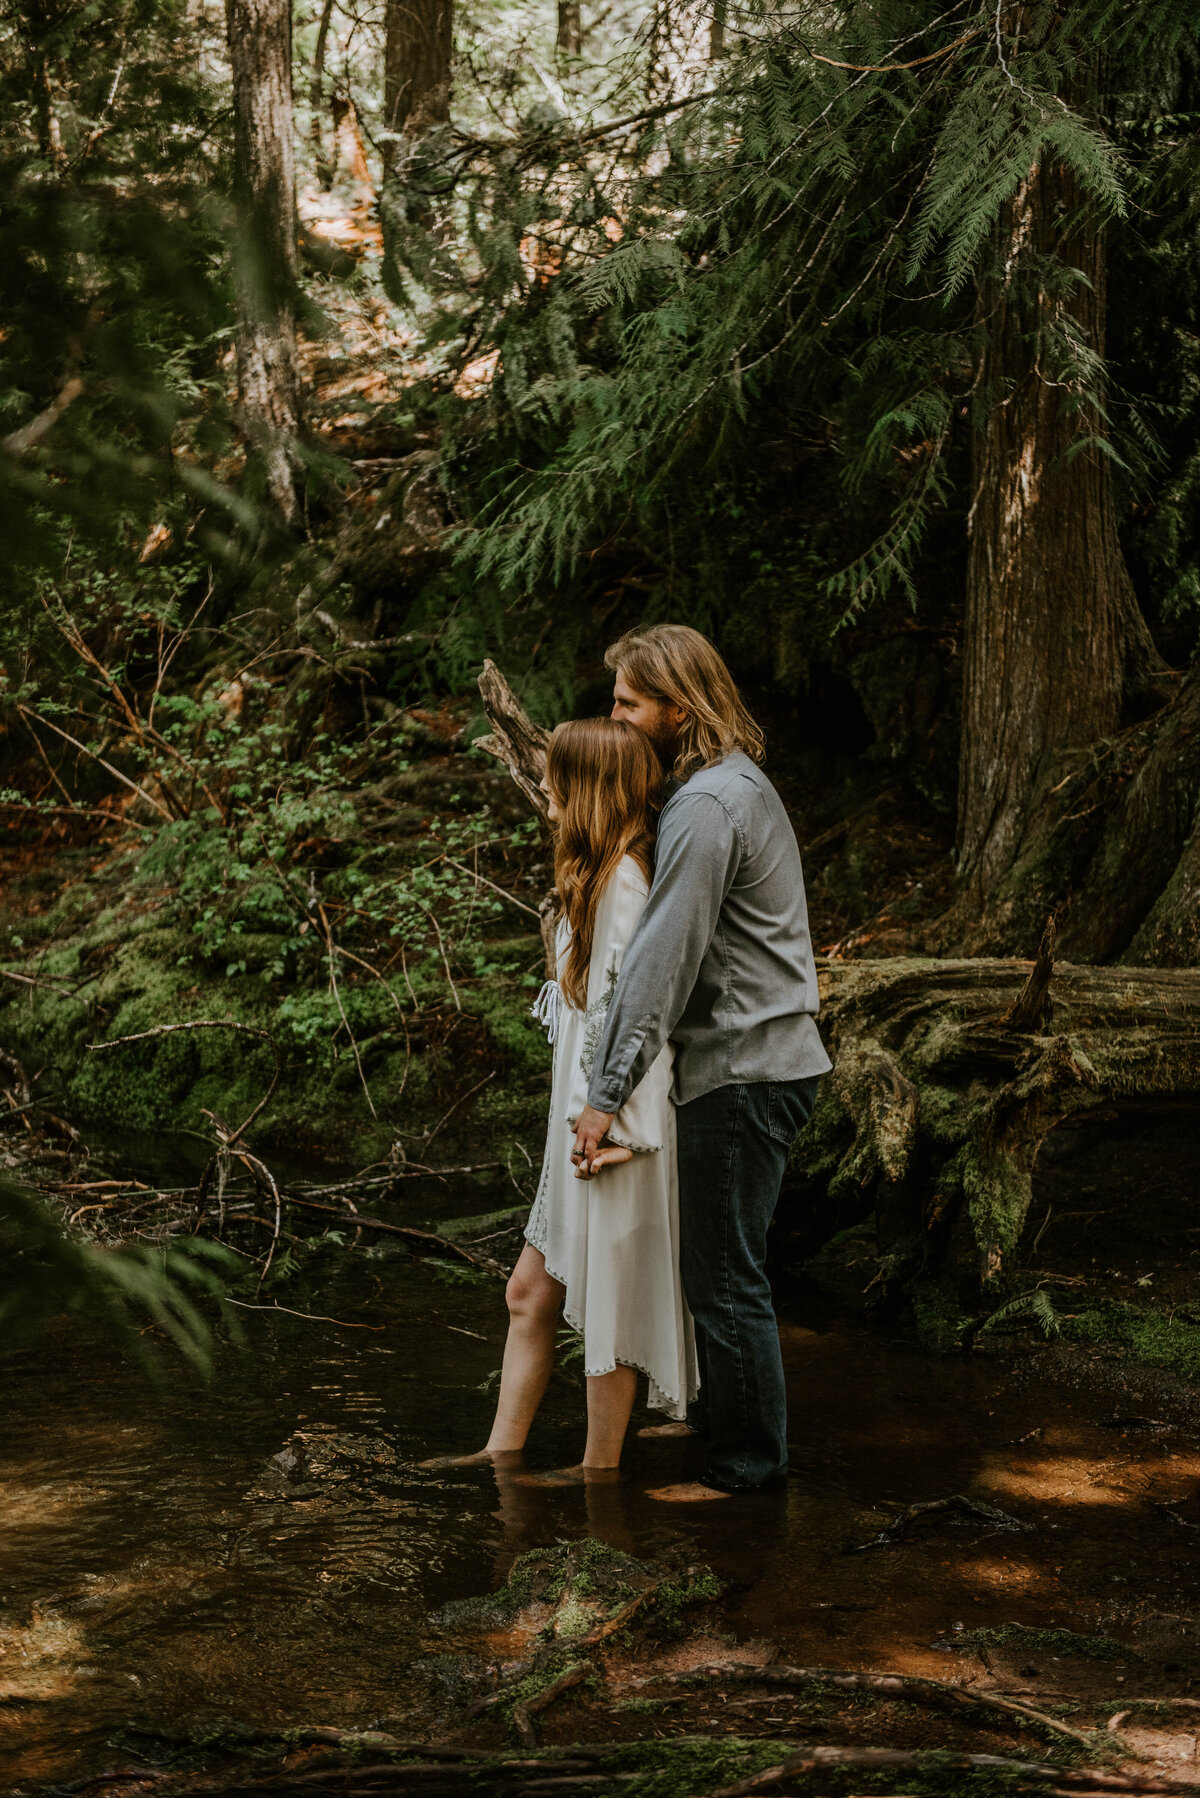 sahalie-falls-summer-oregon-photoshoot-adventure-photographer-bend-couple-forest-outfits-elopement-wedding7937